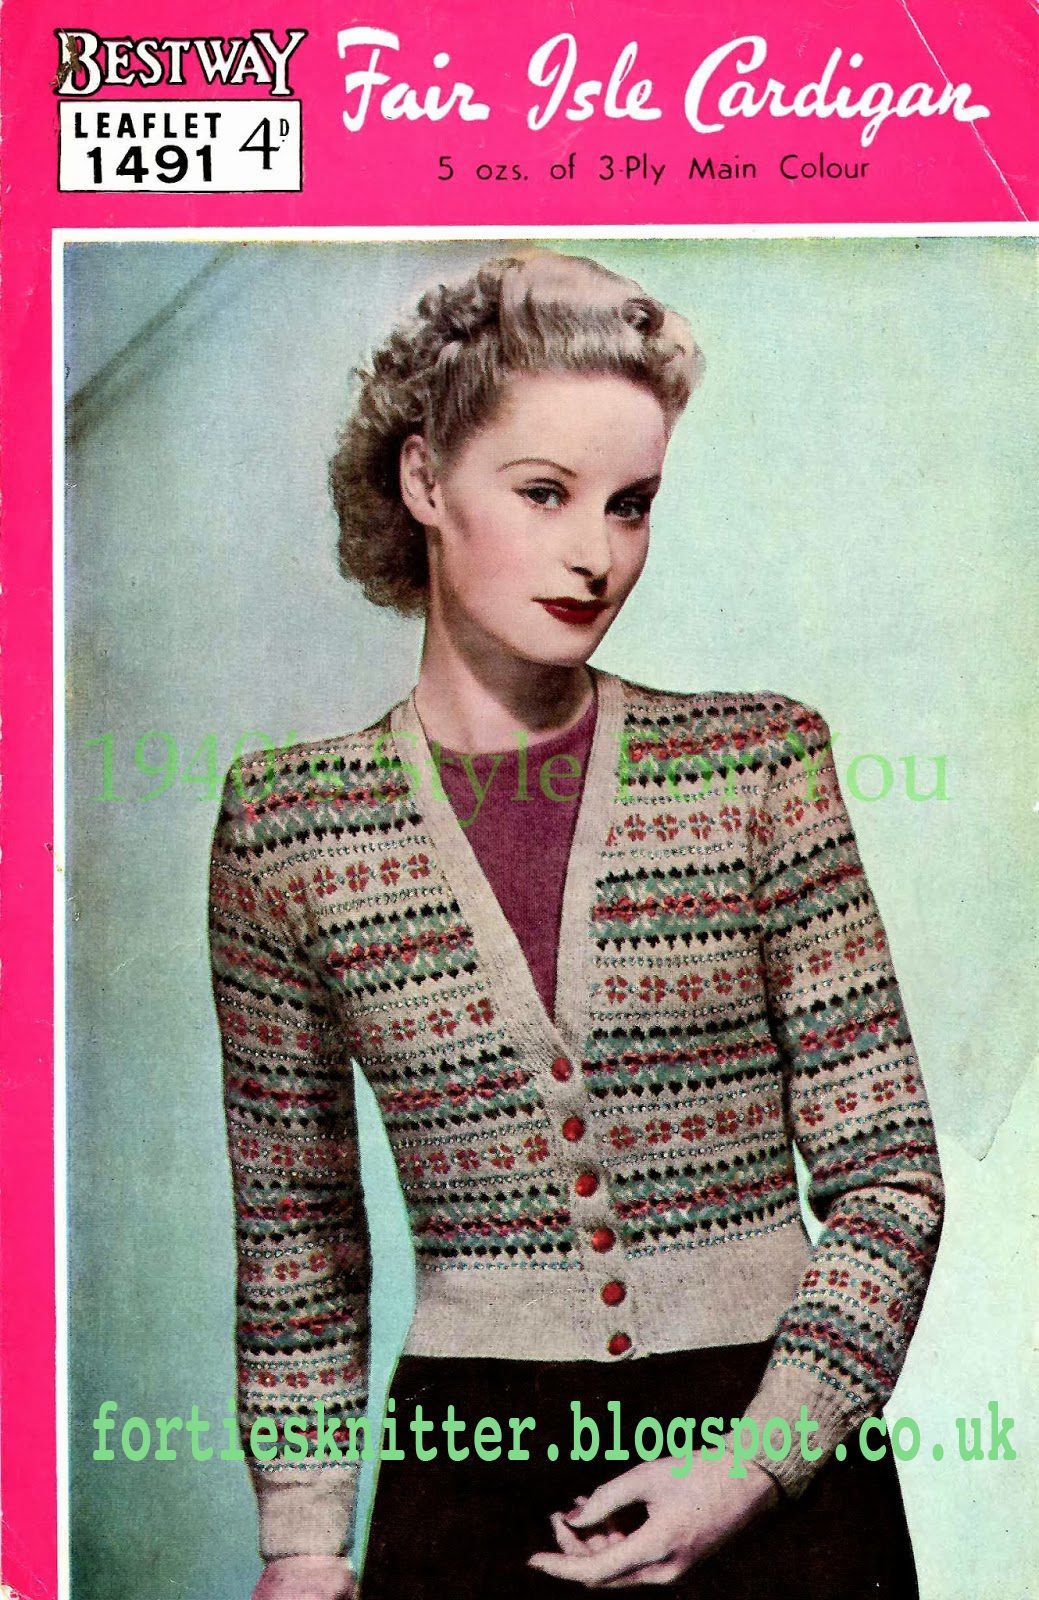 The Vintage Pattern Files 1940s Knitting Bestway No1491 Fair